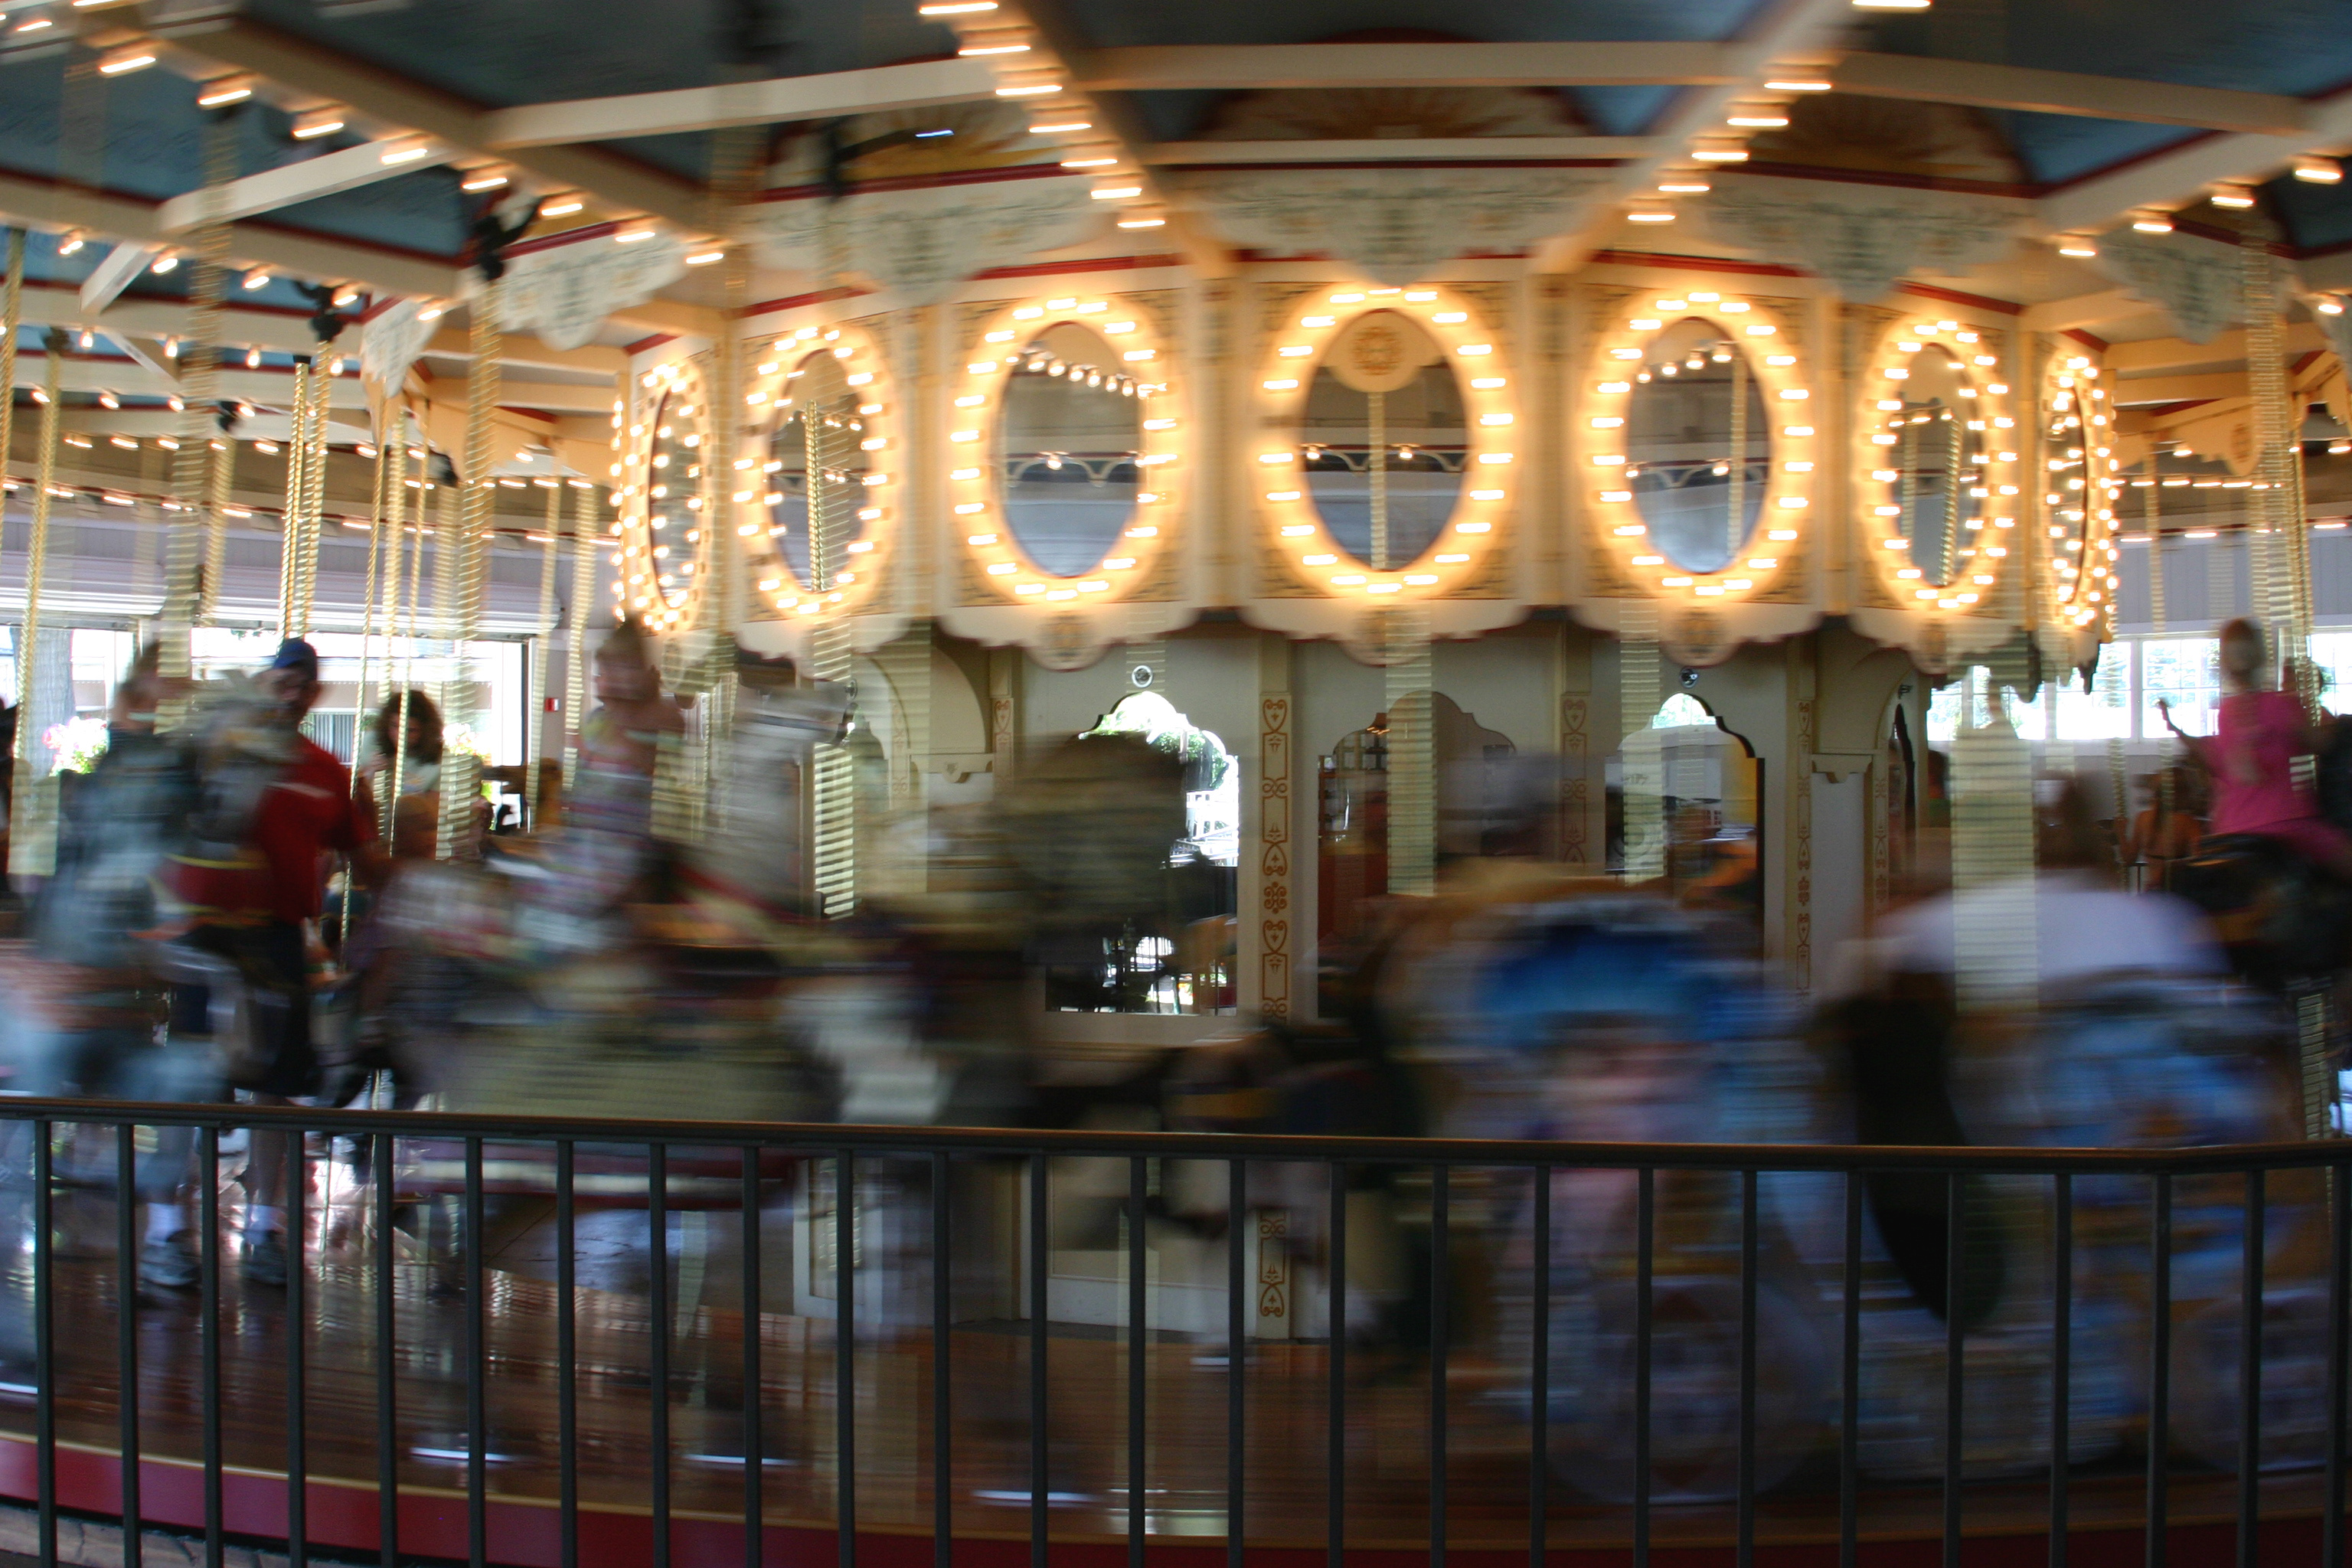 The House Hunting Merry-Go-Round